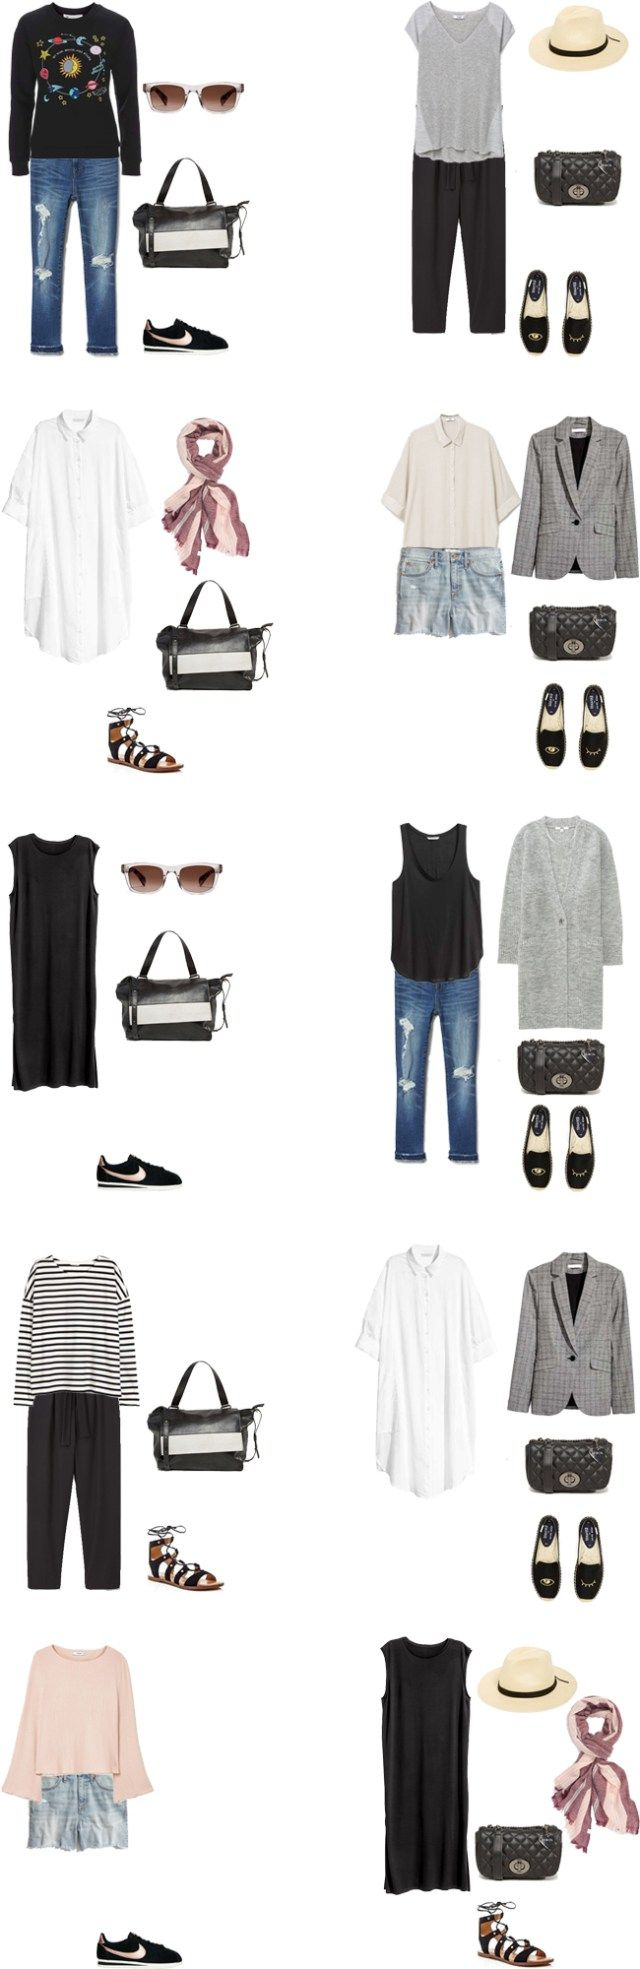 Packing List: 2 weeks in Lisbon, Portugal in Spring 2017. Outfit Options 1 - livelovesara